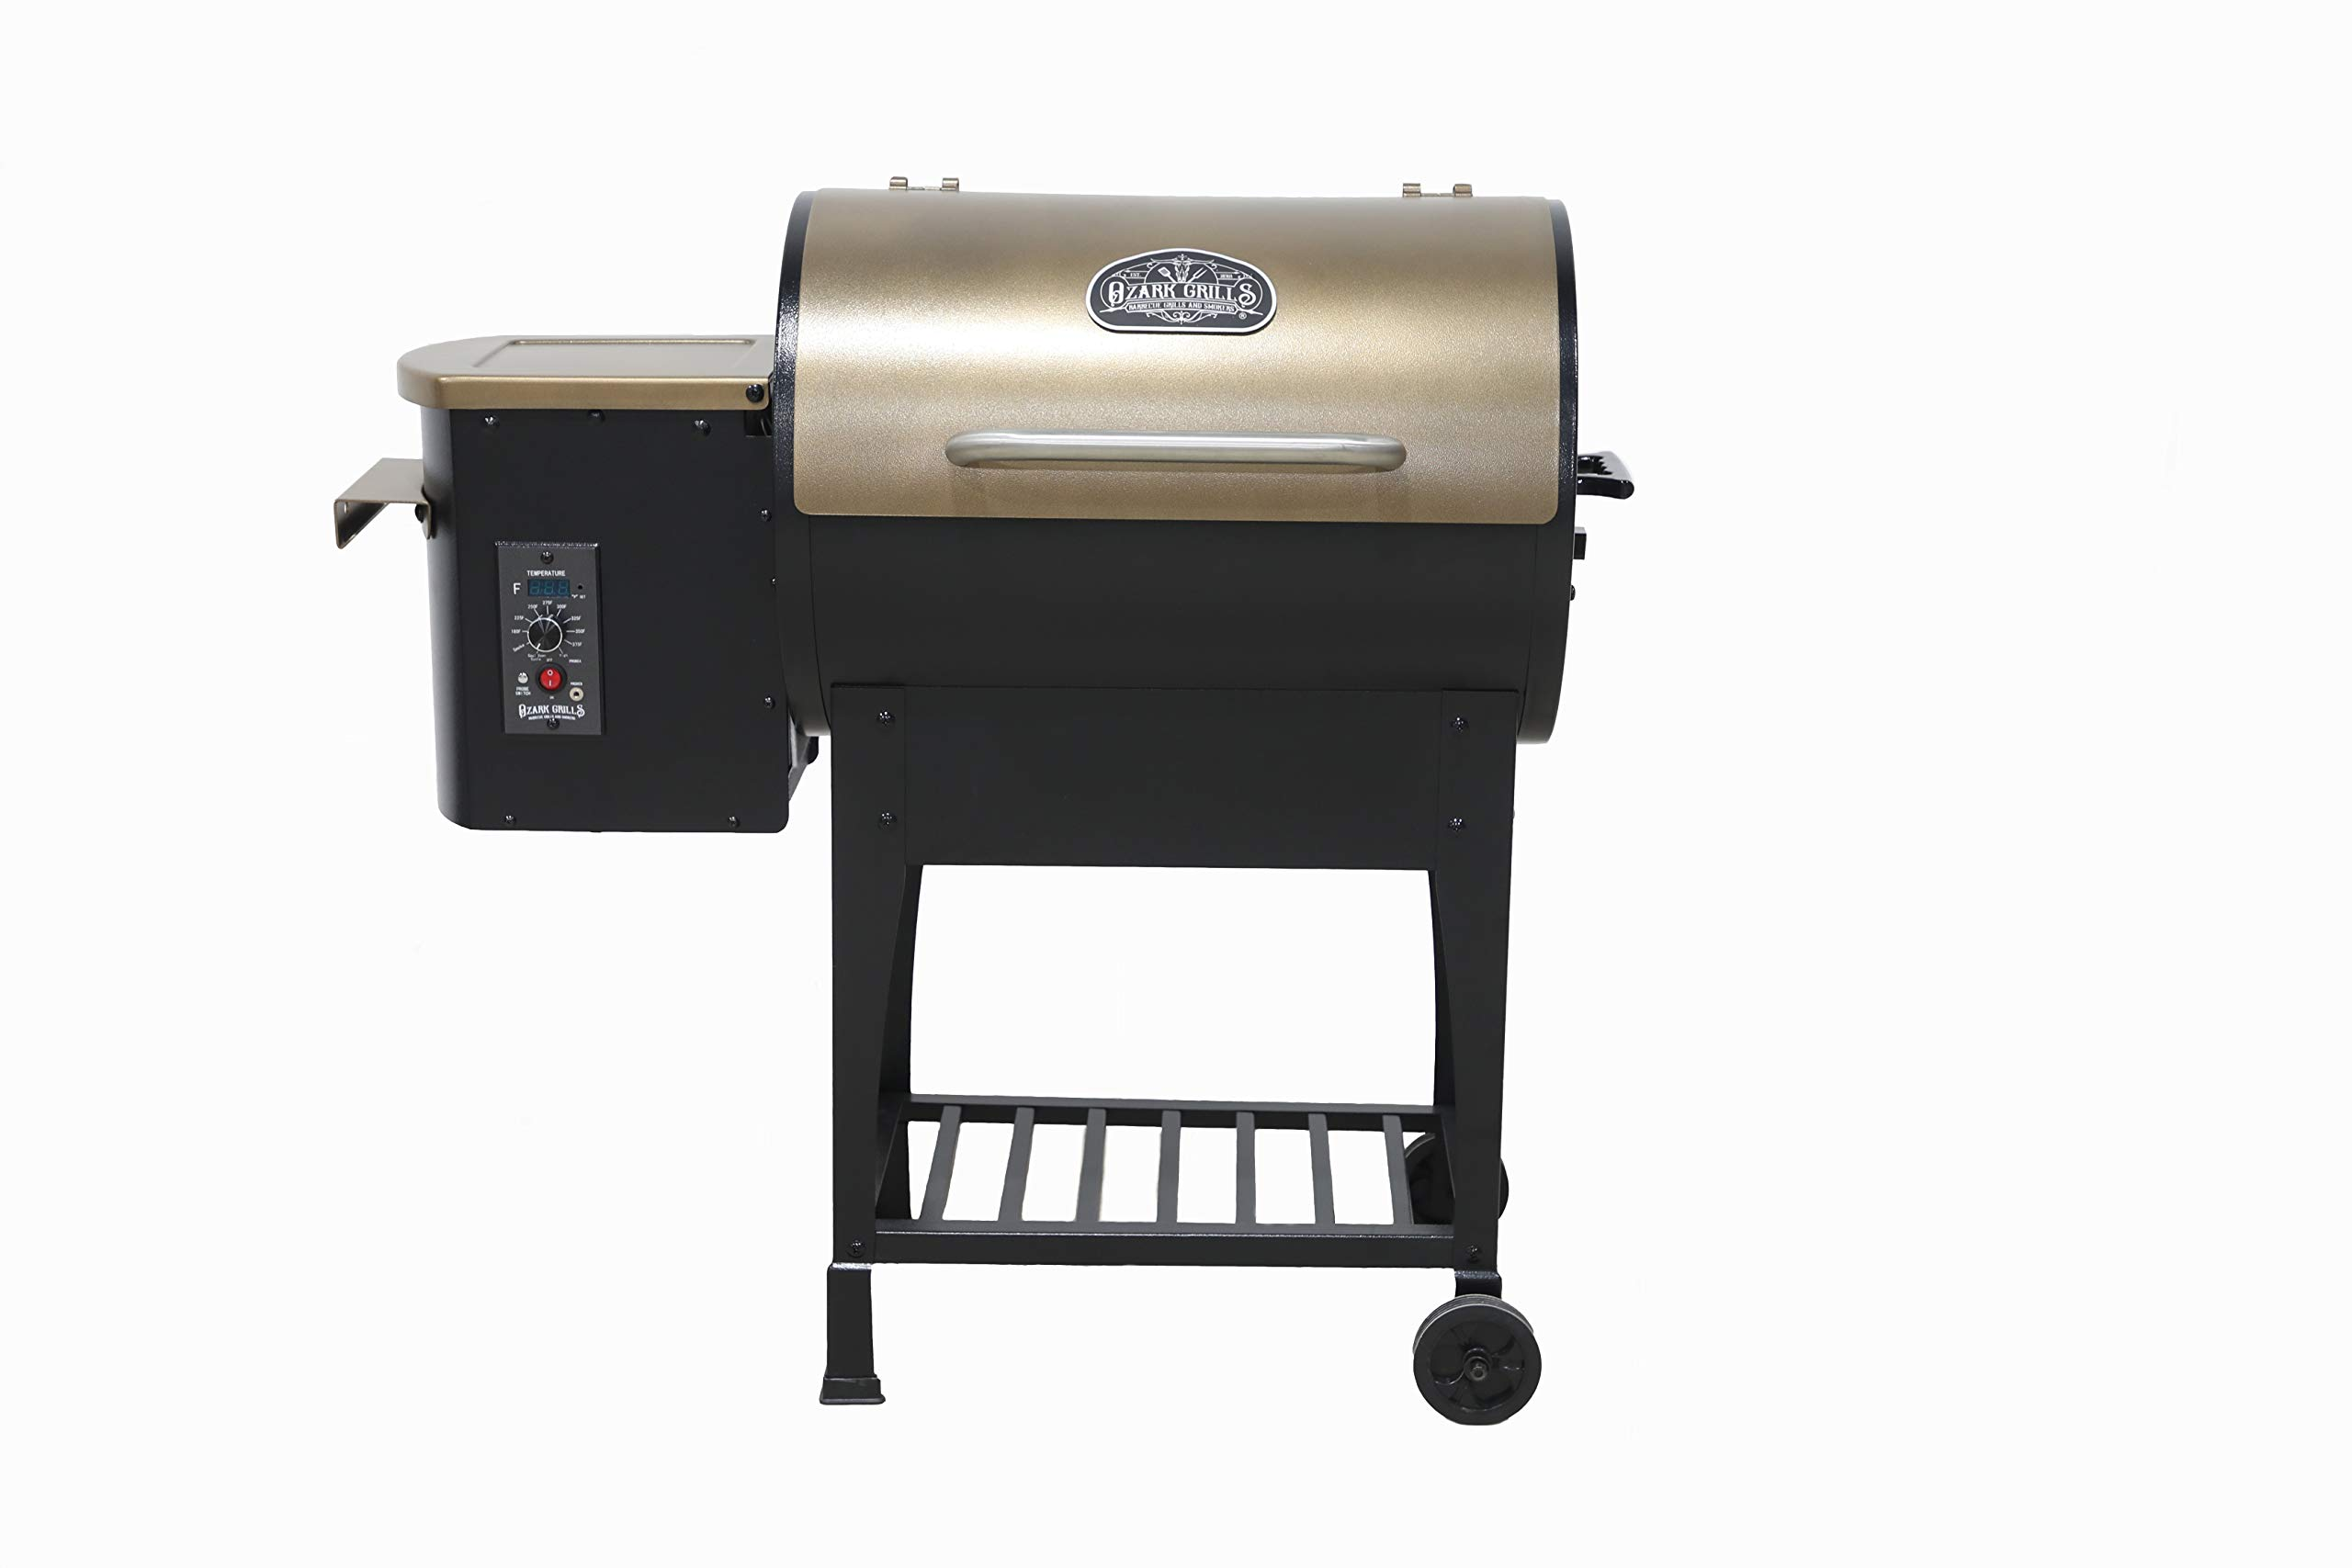 Ozark Grills - The Razorback Wood Pellet Grill and Smoker with Temperature Probe, 11 Pound Hopper, 352 Square Inch Cooking Area by Ozark Grills